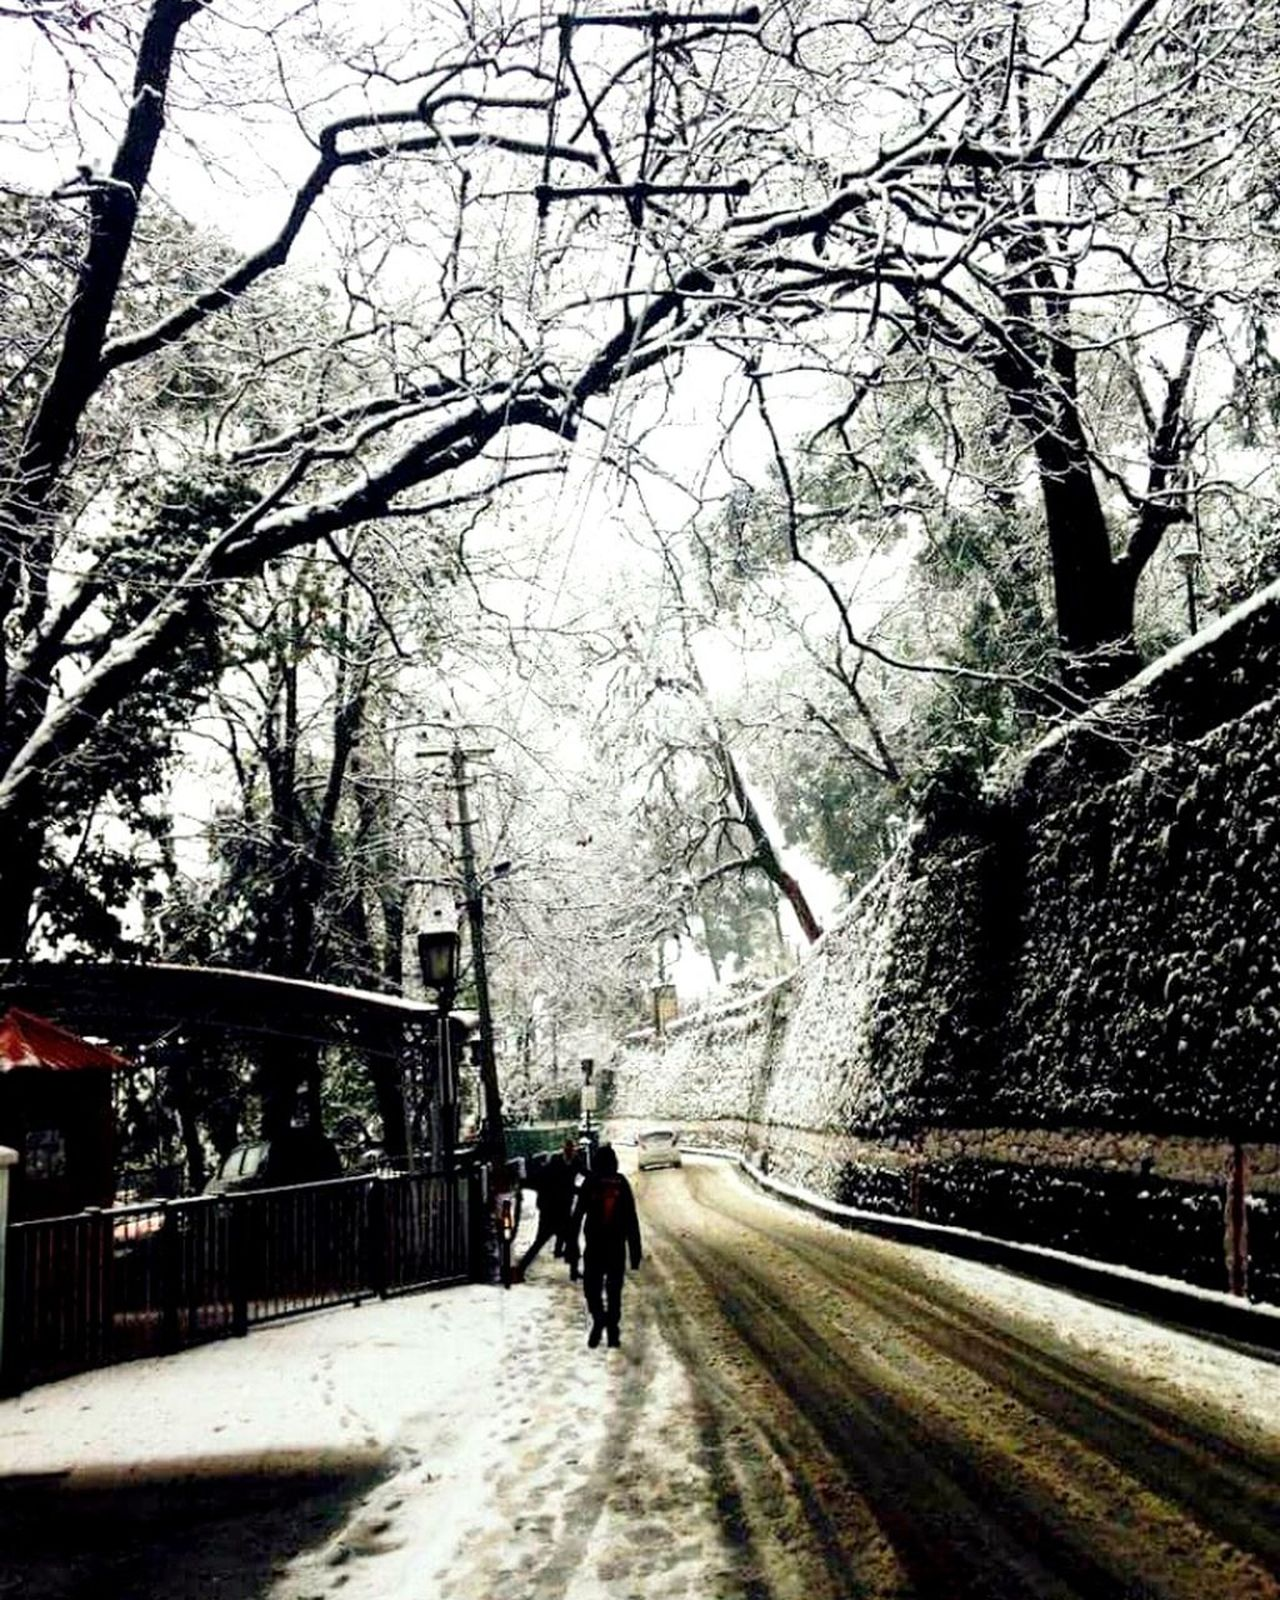 Tree Real People The Way Forward Walking Outdoors Road Nature Beauty In Nature EyeEmNewHere Mountain Range The City Light Minimalist Architecture Carnival Crowds And Details Snow ❄ Everywhere